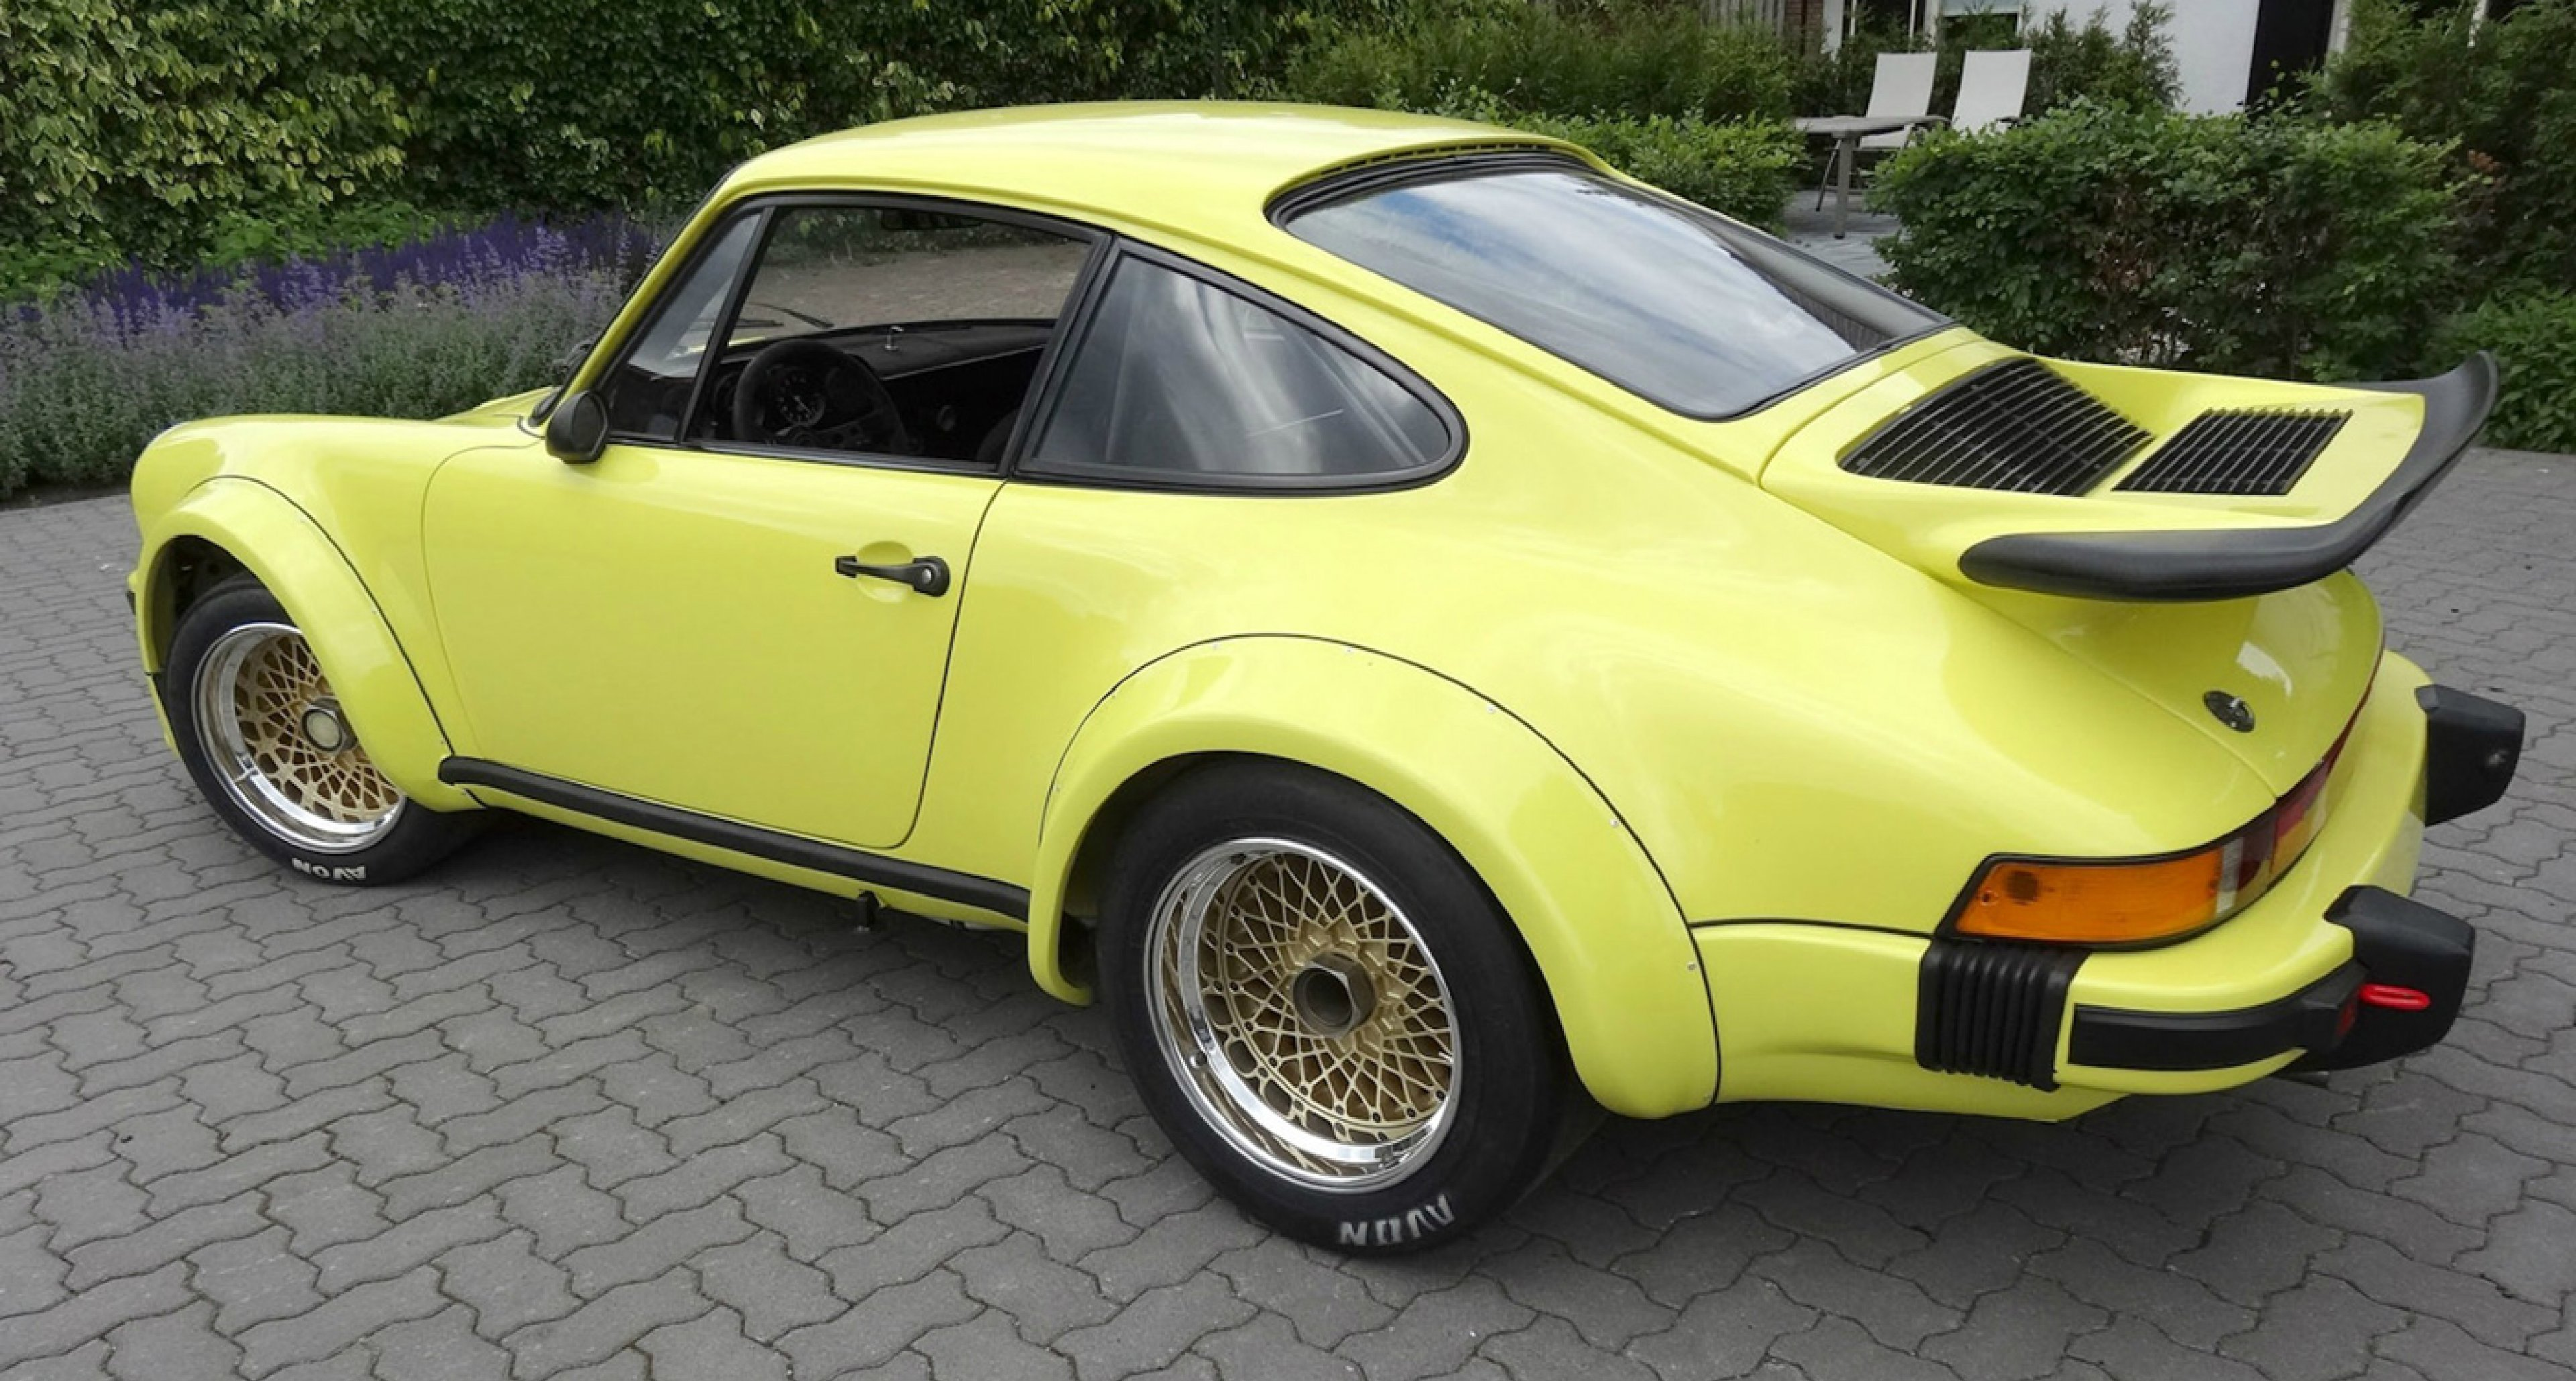 Coys auction at the Nurburgring 2014 - 1976 Porsche 934 RSR Turbo